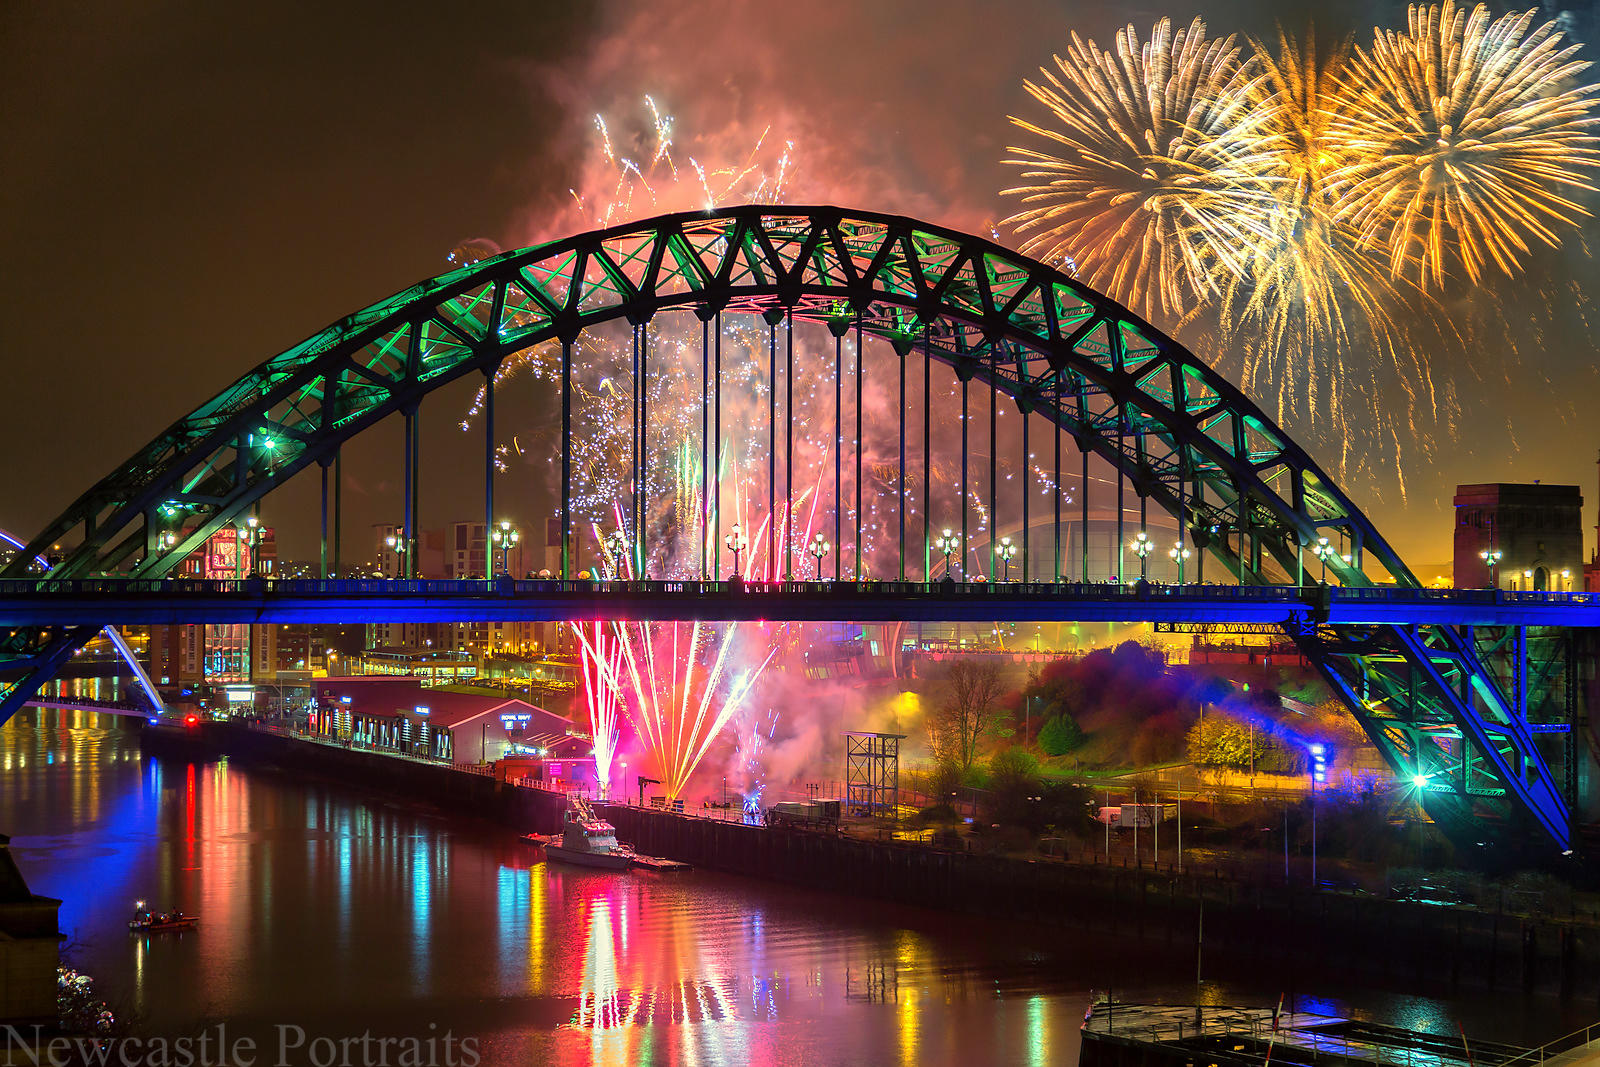 Newcastle Gateshead New Year Fireworks